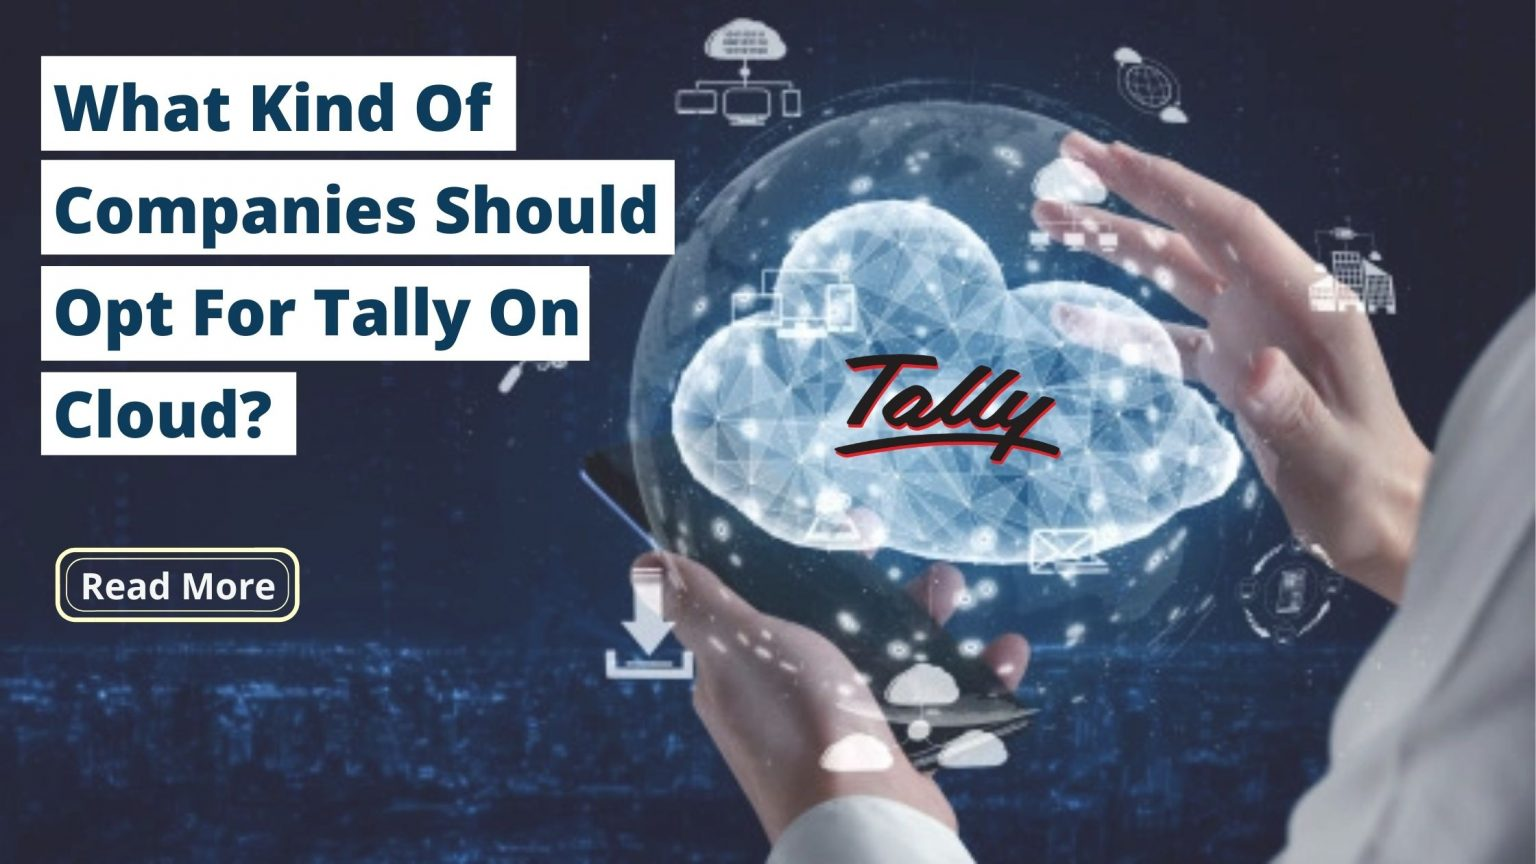 What Kind Of Companies Should Opt For Tally On Cloud?